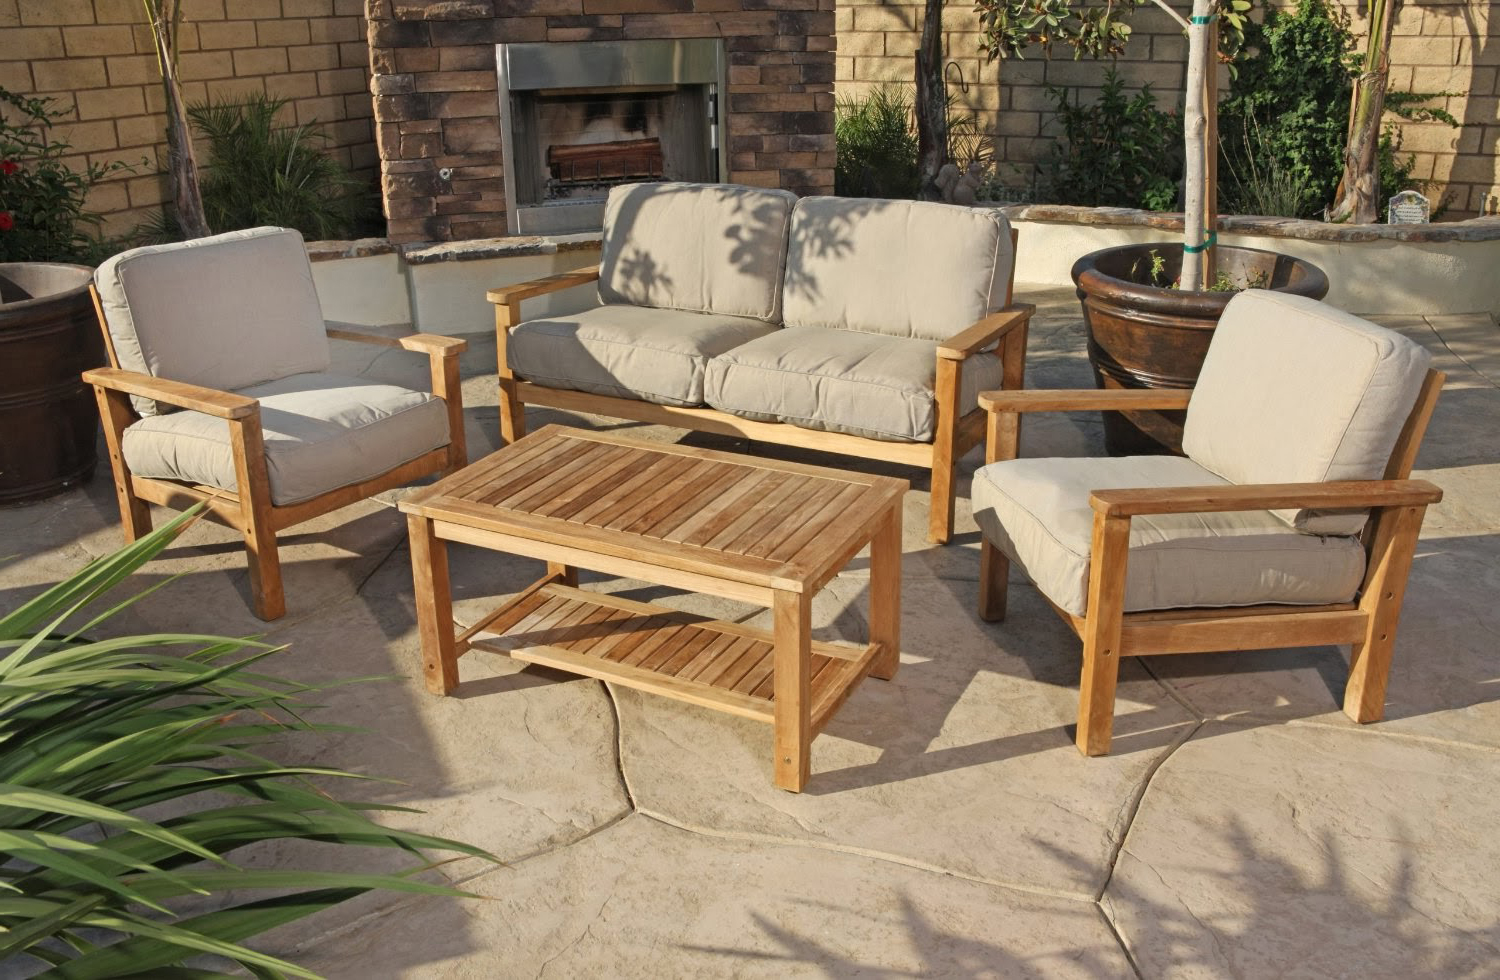 Cleaning Teak Patio Furniture.Cleaning Teak Patio Furniture Royals Courage Restore Weathered